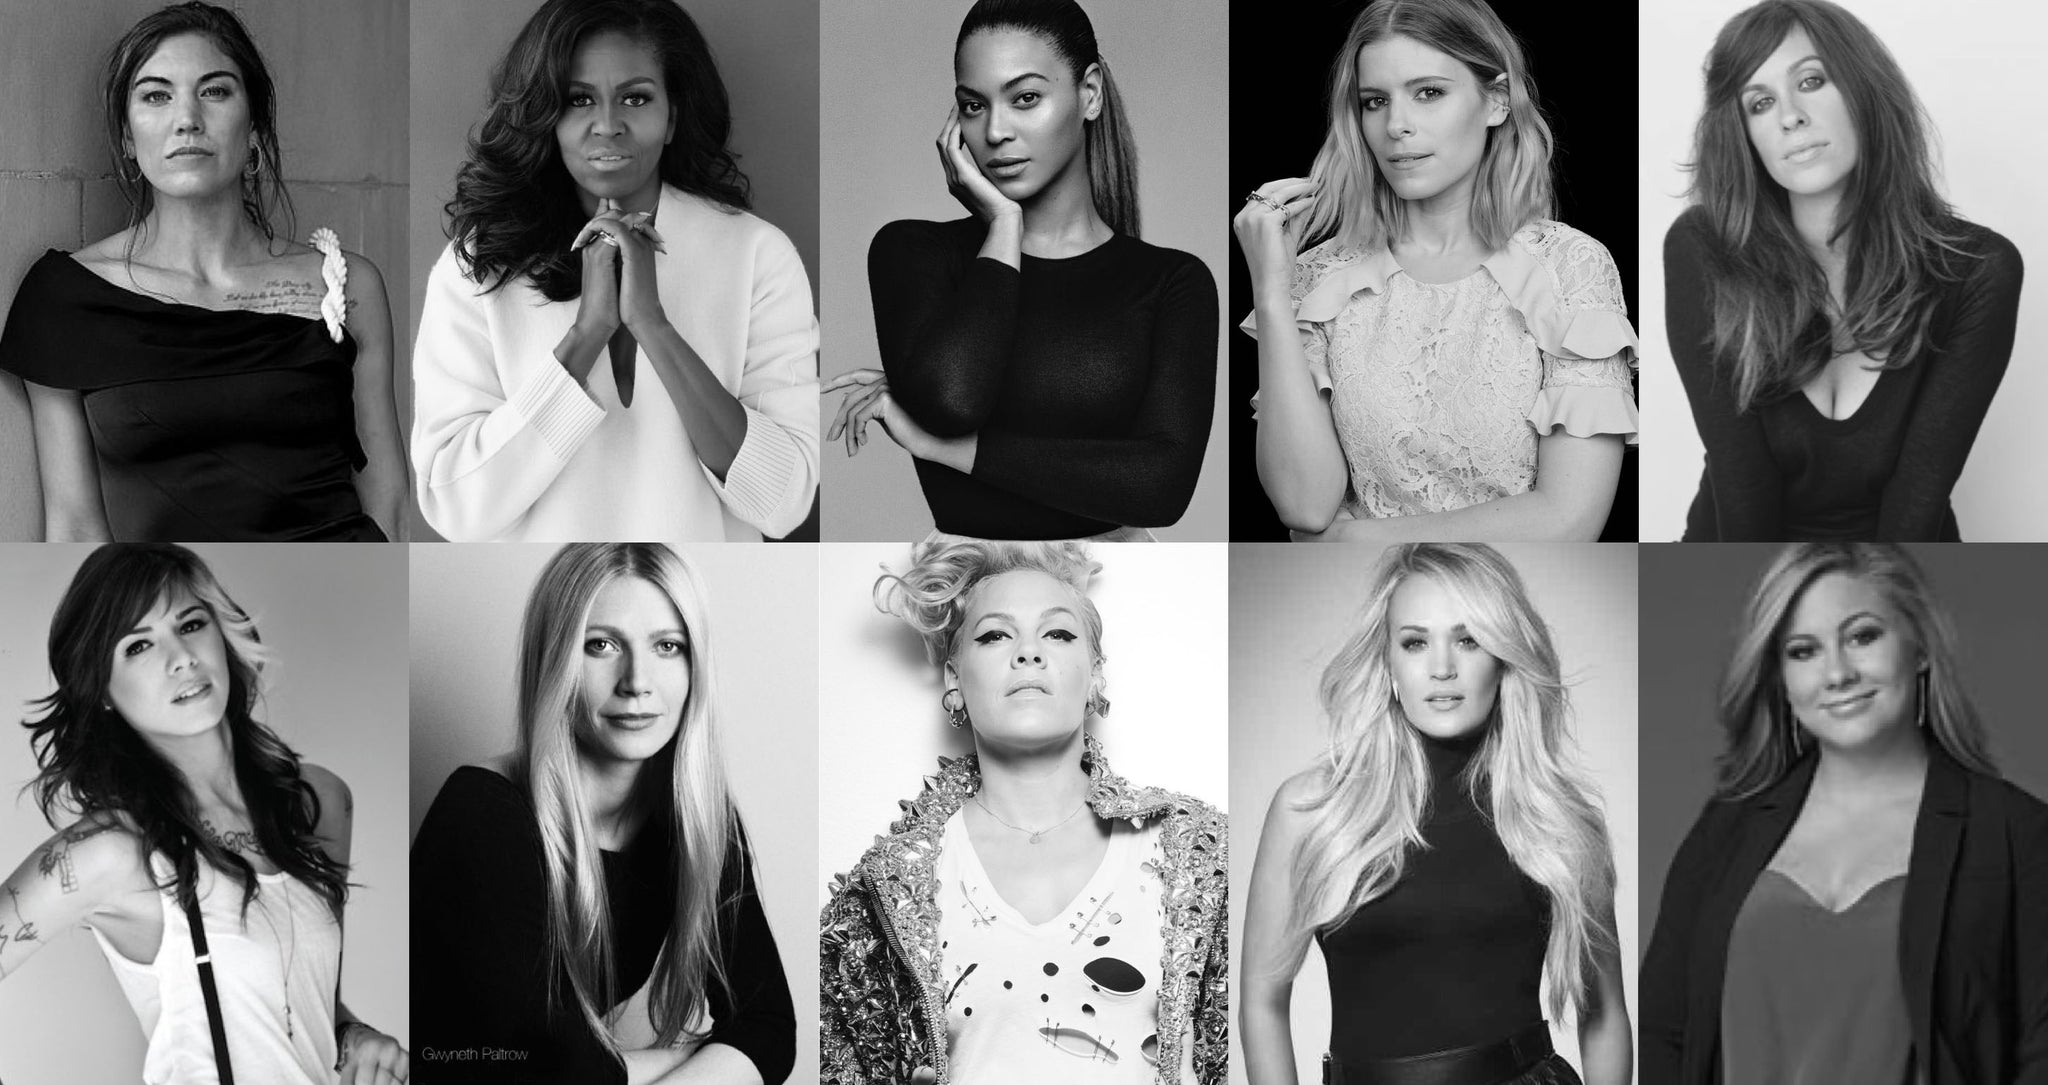 Michelle Obama, Beyonce, Pink, Carrie Underwood, Gwyneth Paltrow, Alanis Morissette, Shawn Johnson, Kate Mara, Hope Solo, Dylan Dreyer, Michelle Branch, Hilaria Baldwin and Shay Mitchell